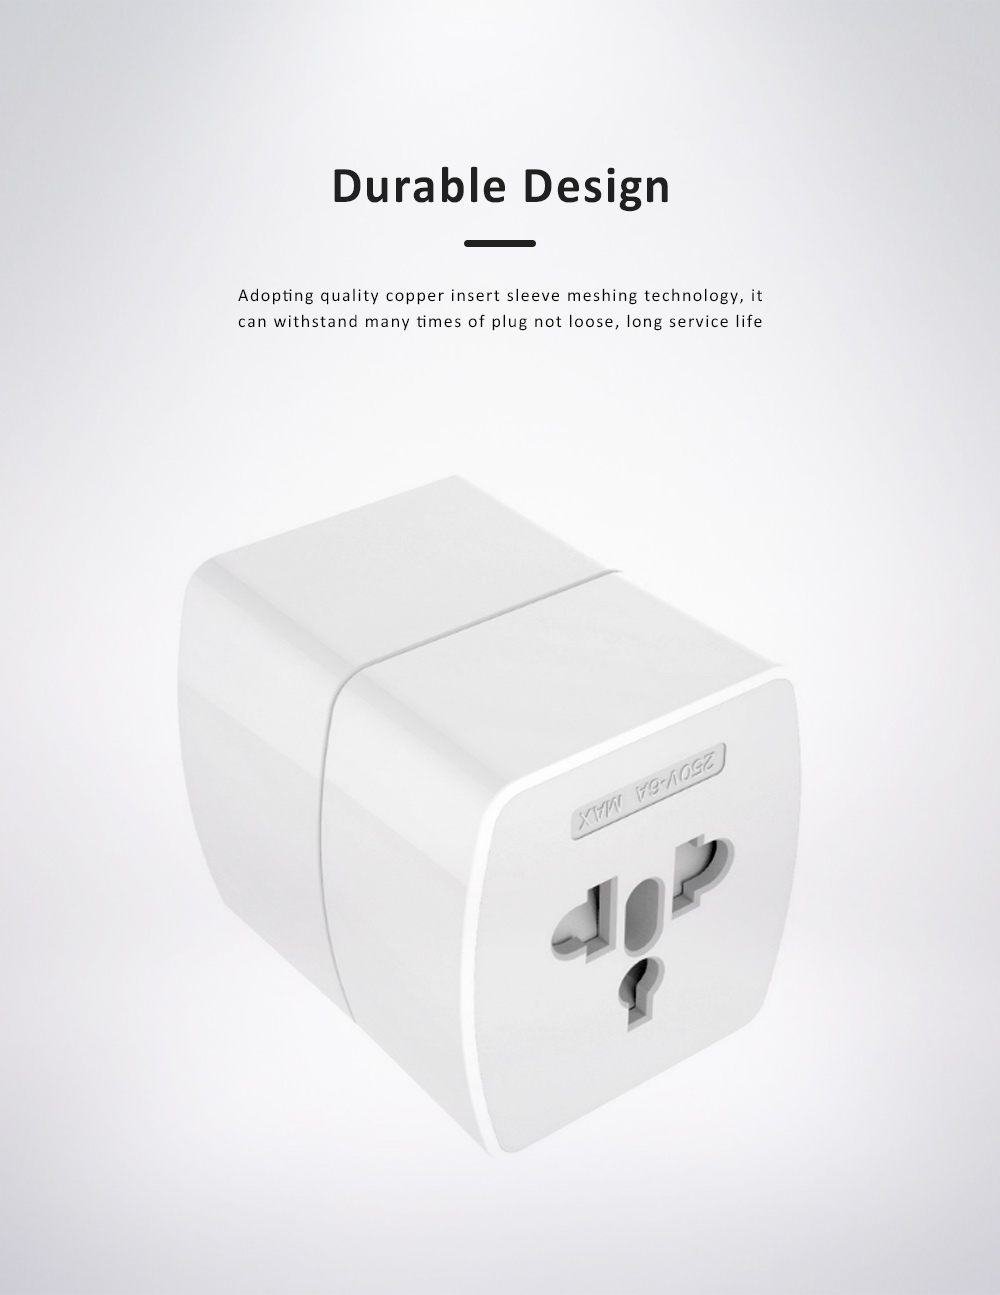 Universal Change-over Plug with Change-over Jack, Small Portable Universal Travel Charging Plug 3